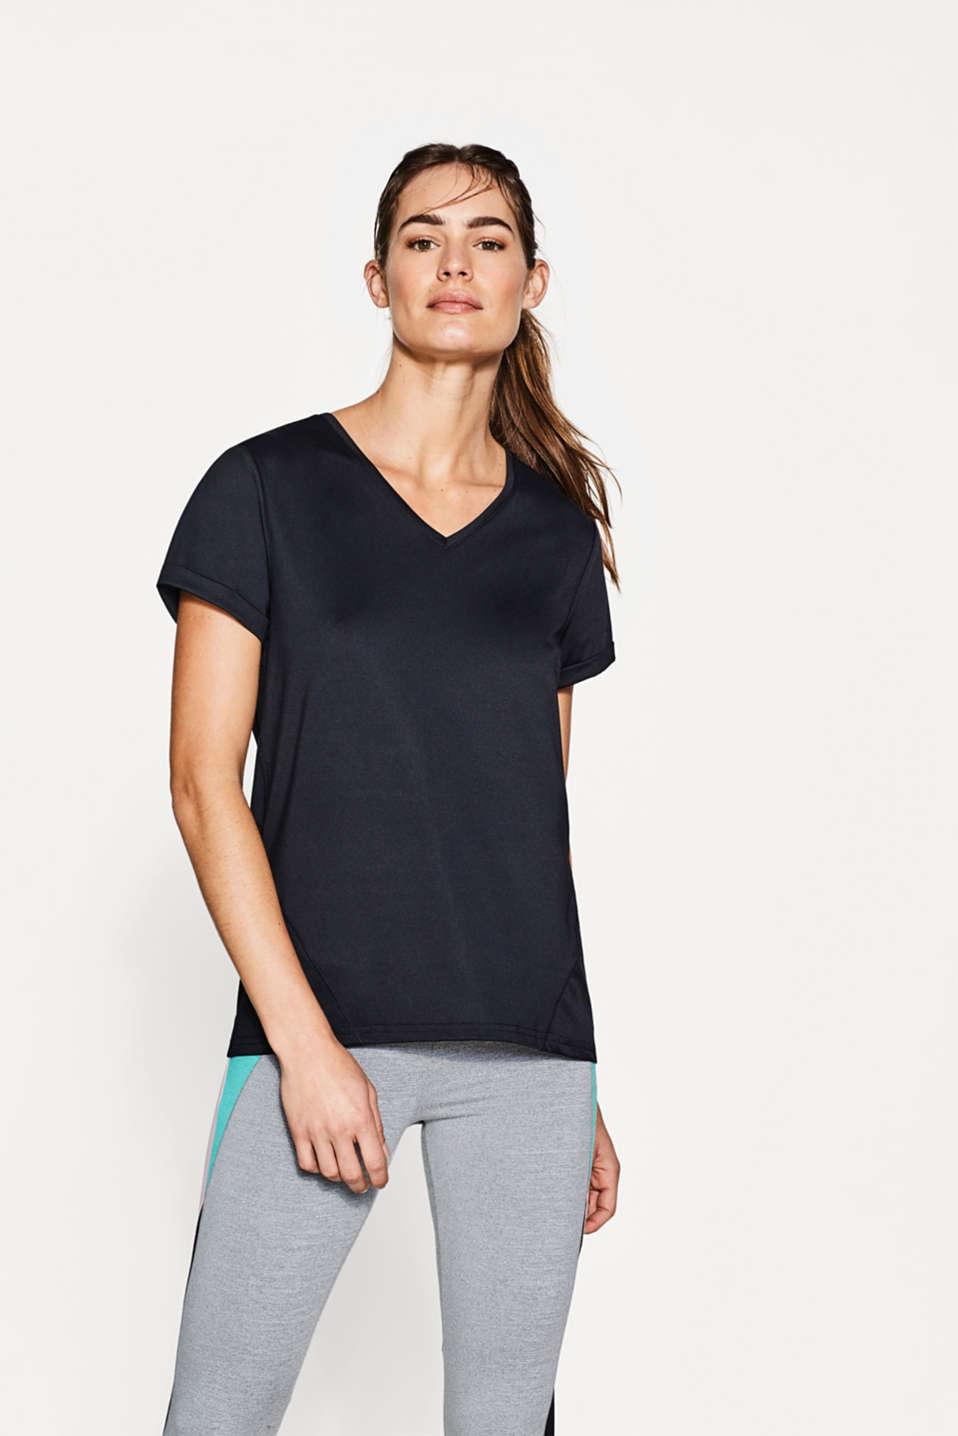 Esprit - Active T-shirt + V-neckline and logo, E-DRY